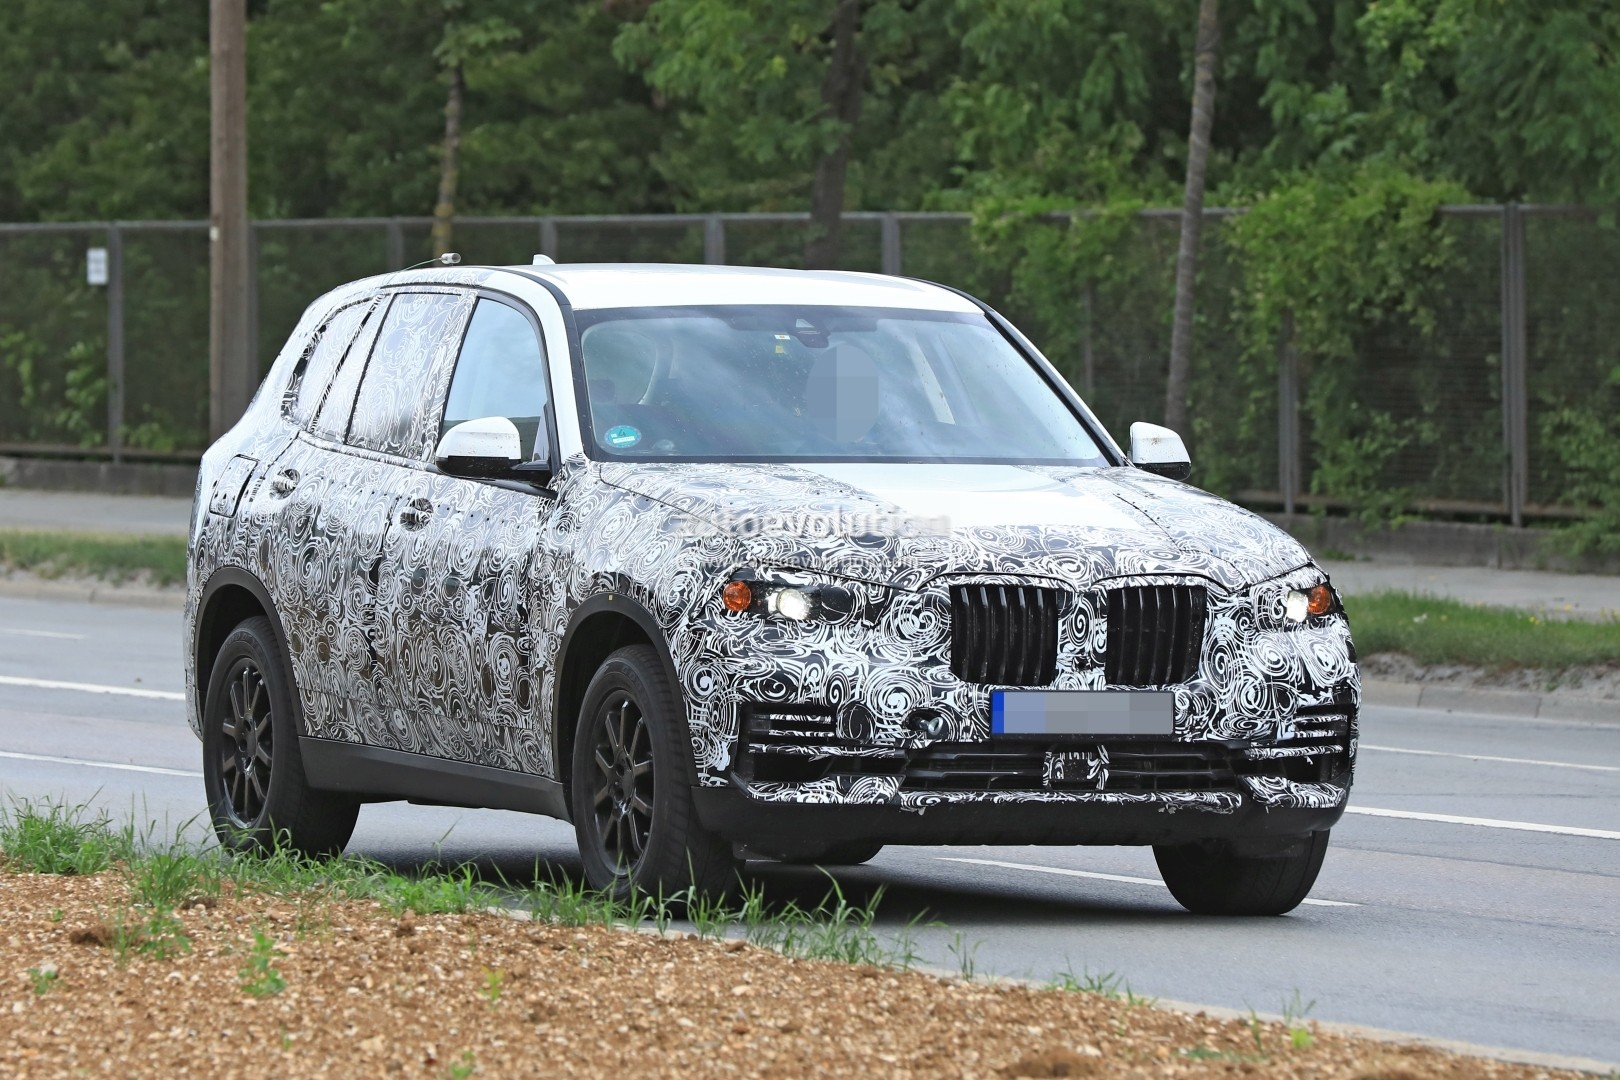 2019-bmw-x5-spied-prototype-reveals-new-angular-design-front-air-intakes_1